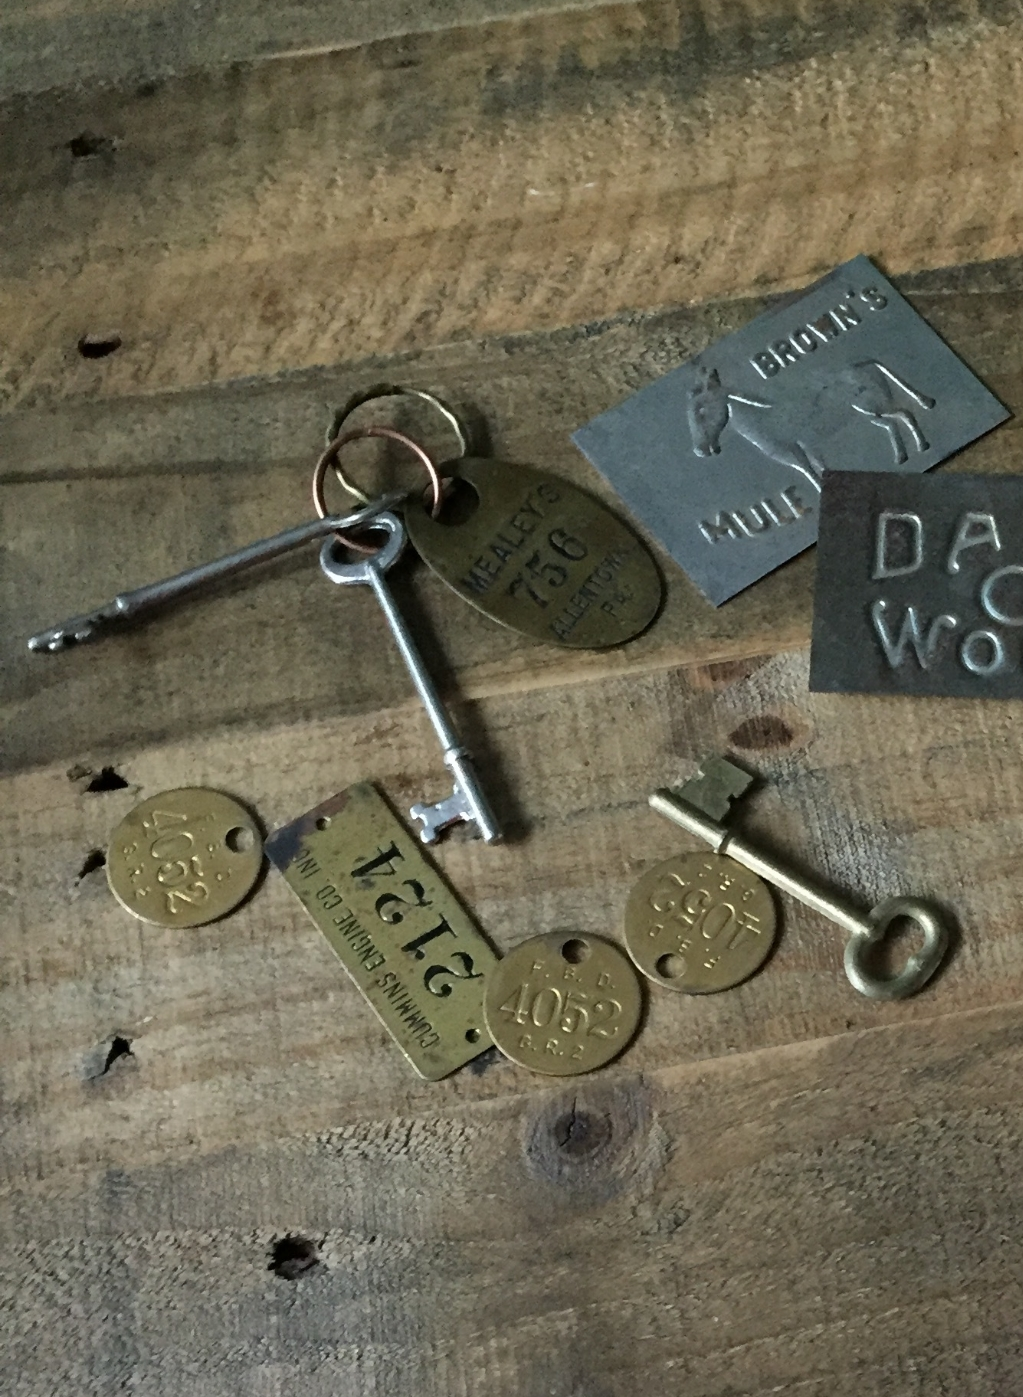 """I had purchased these antique coat check tags, skeleton keys,and tool tags earlier in the day. I was now in the market for something unique to help me turn this """"trash"""" into fabulous treasures. Sandy and his staff were great, and I have to give a {BIG} shout out to my girl Katie! To say she was great at her job, definitely would be an understatement.She could sell ice to an eskimo! I true asset to any sells business. Sandy is a lucky boss! Katie also manages the company Instagram...Go ahead and give her a holler!"""